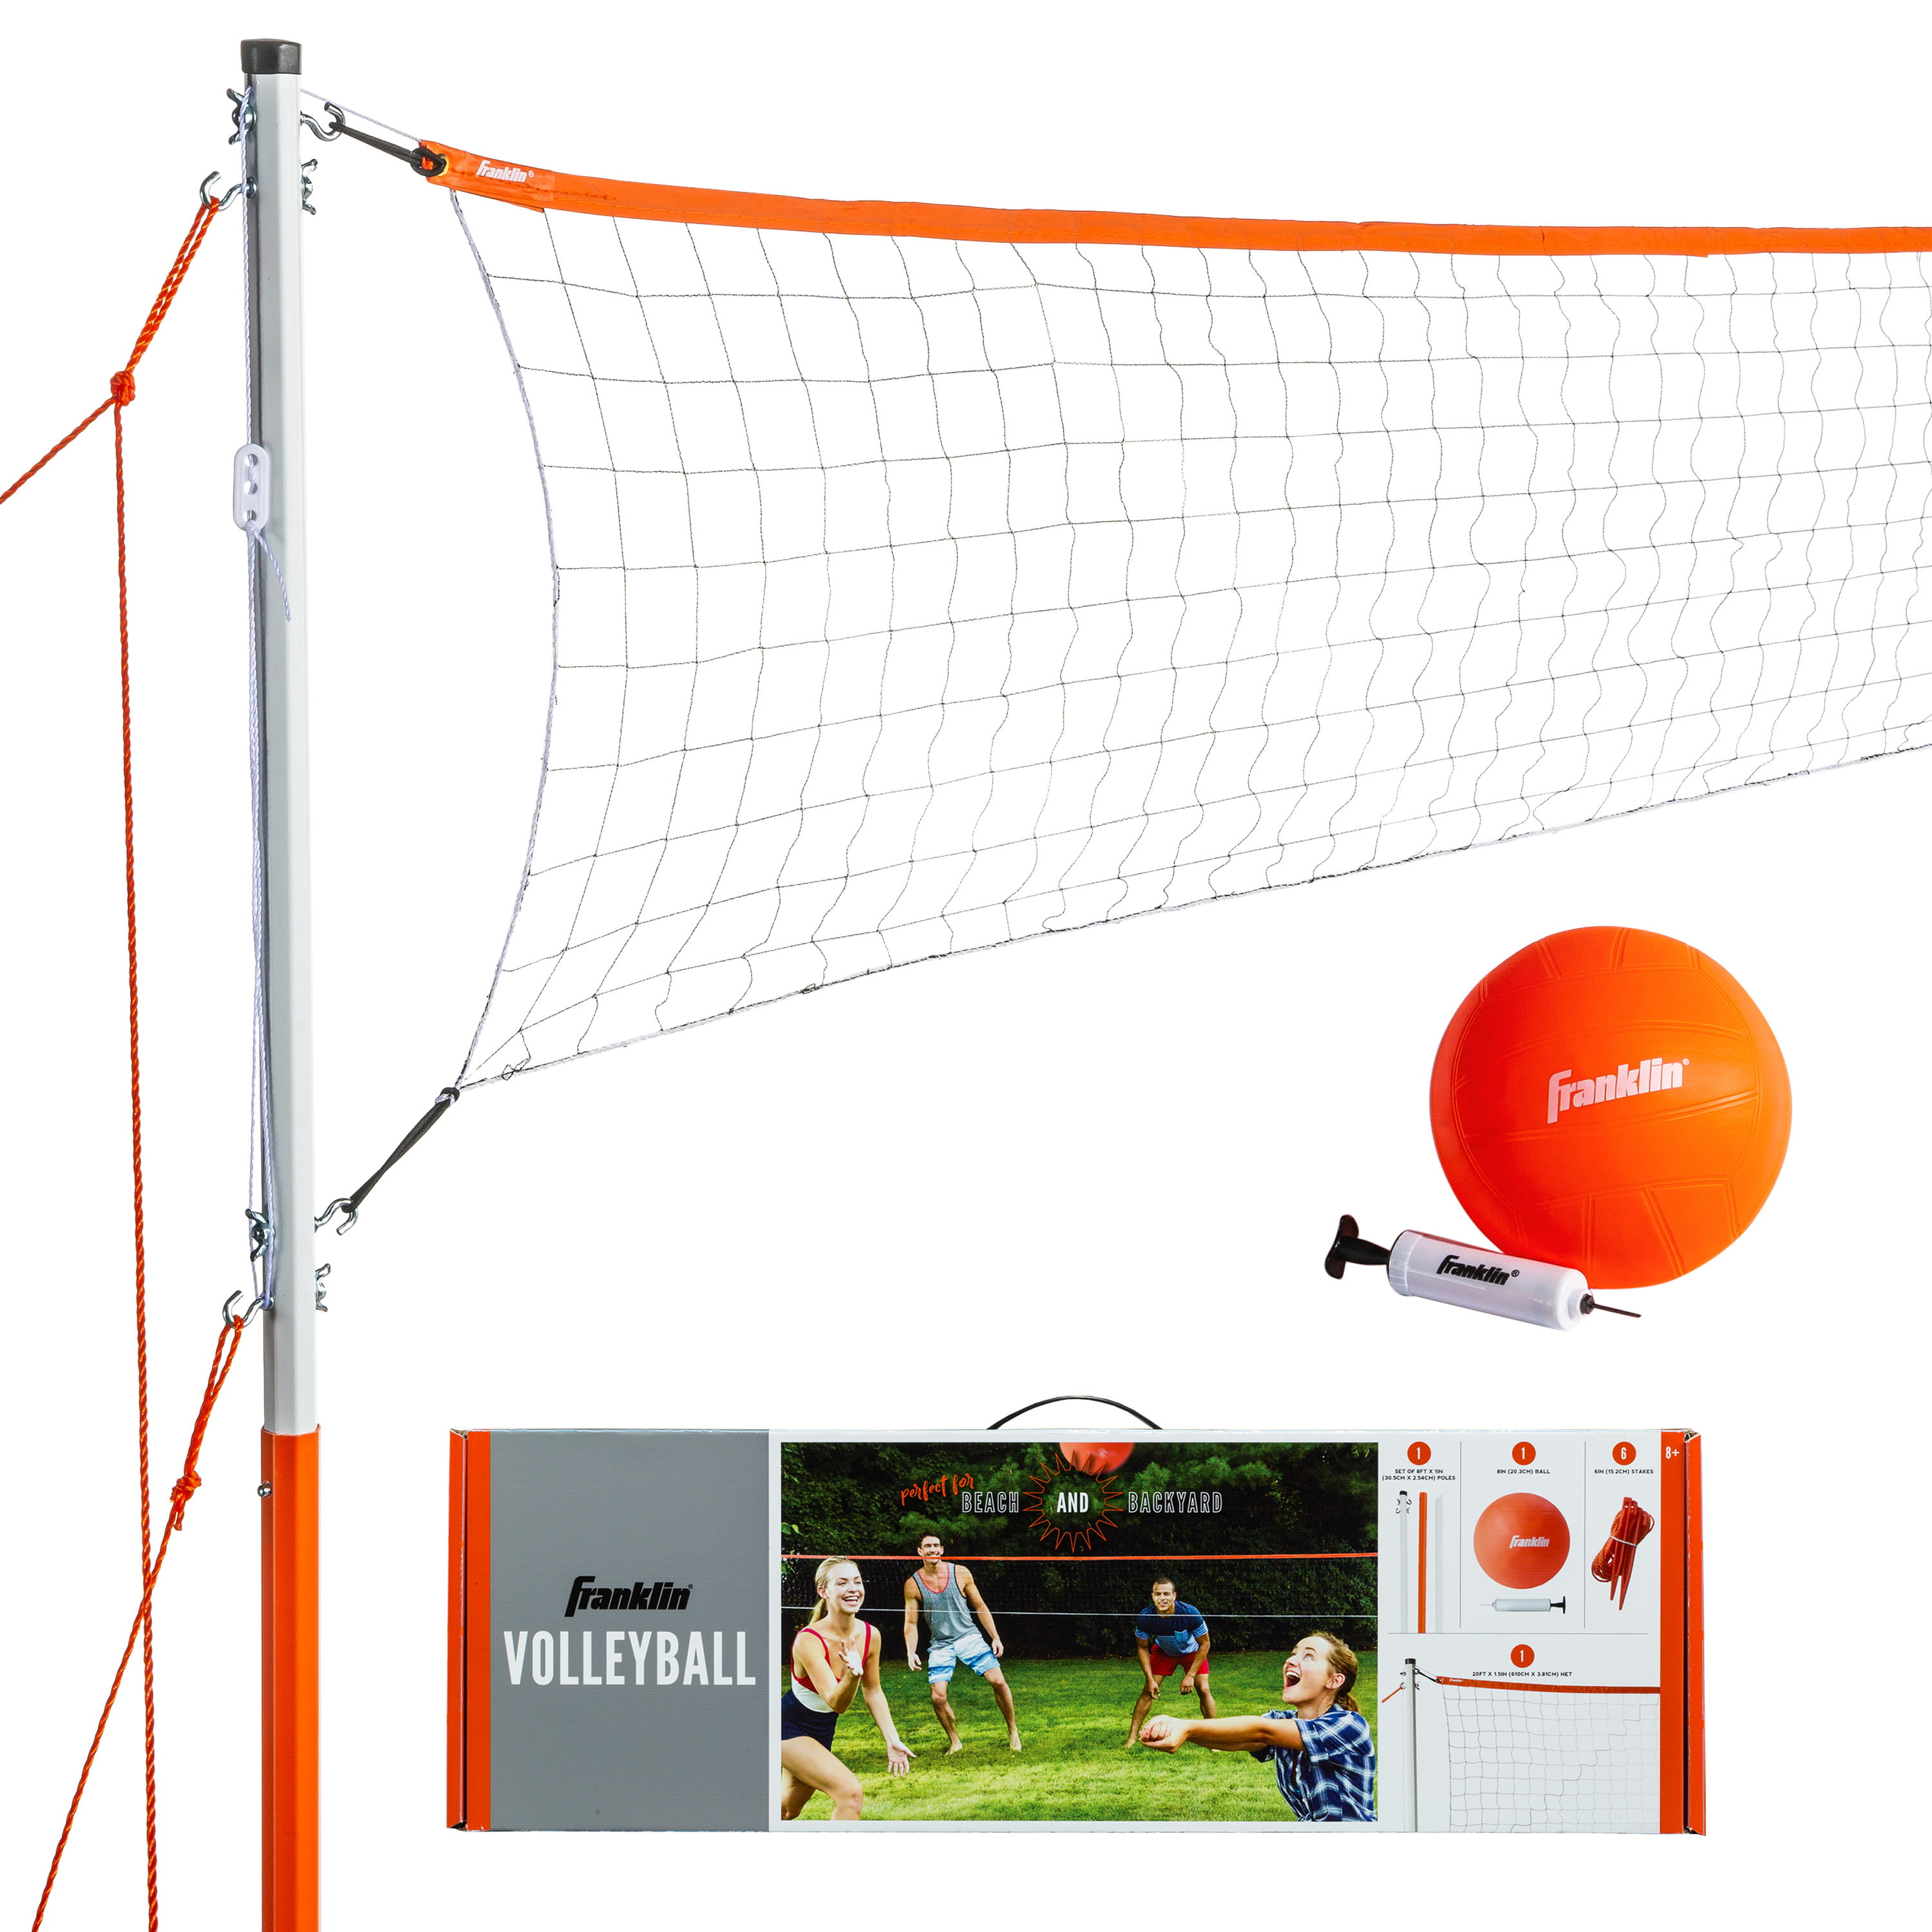 Outdoor For Training Match Volleyball Net Official Size 32 FTx3 FT Beach Gym In